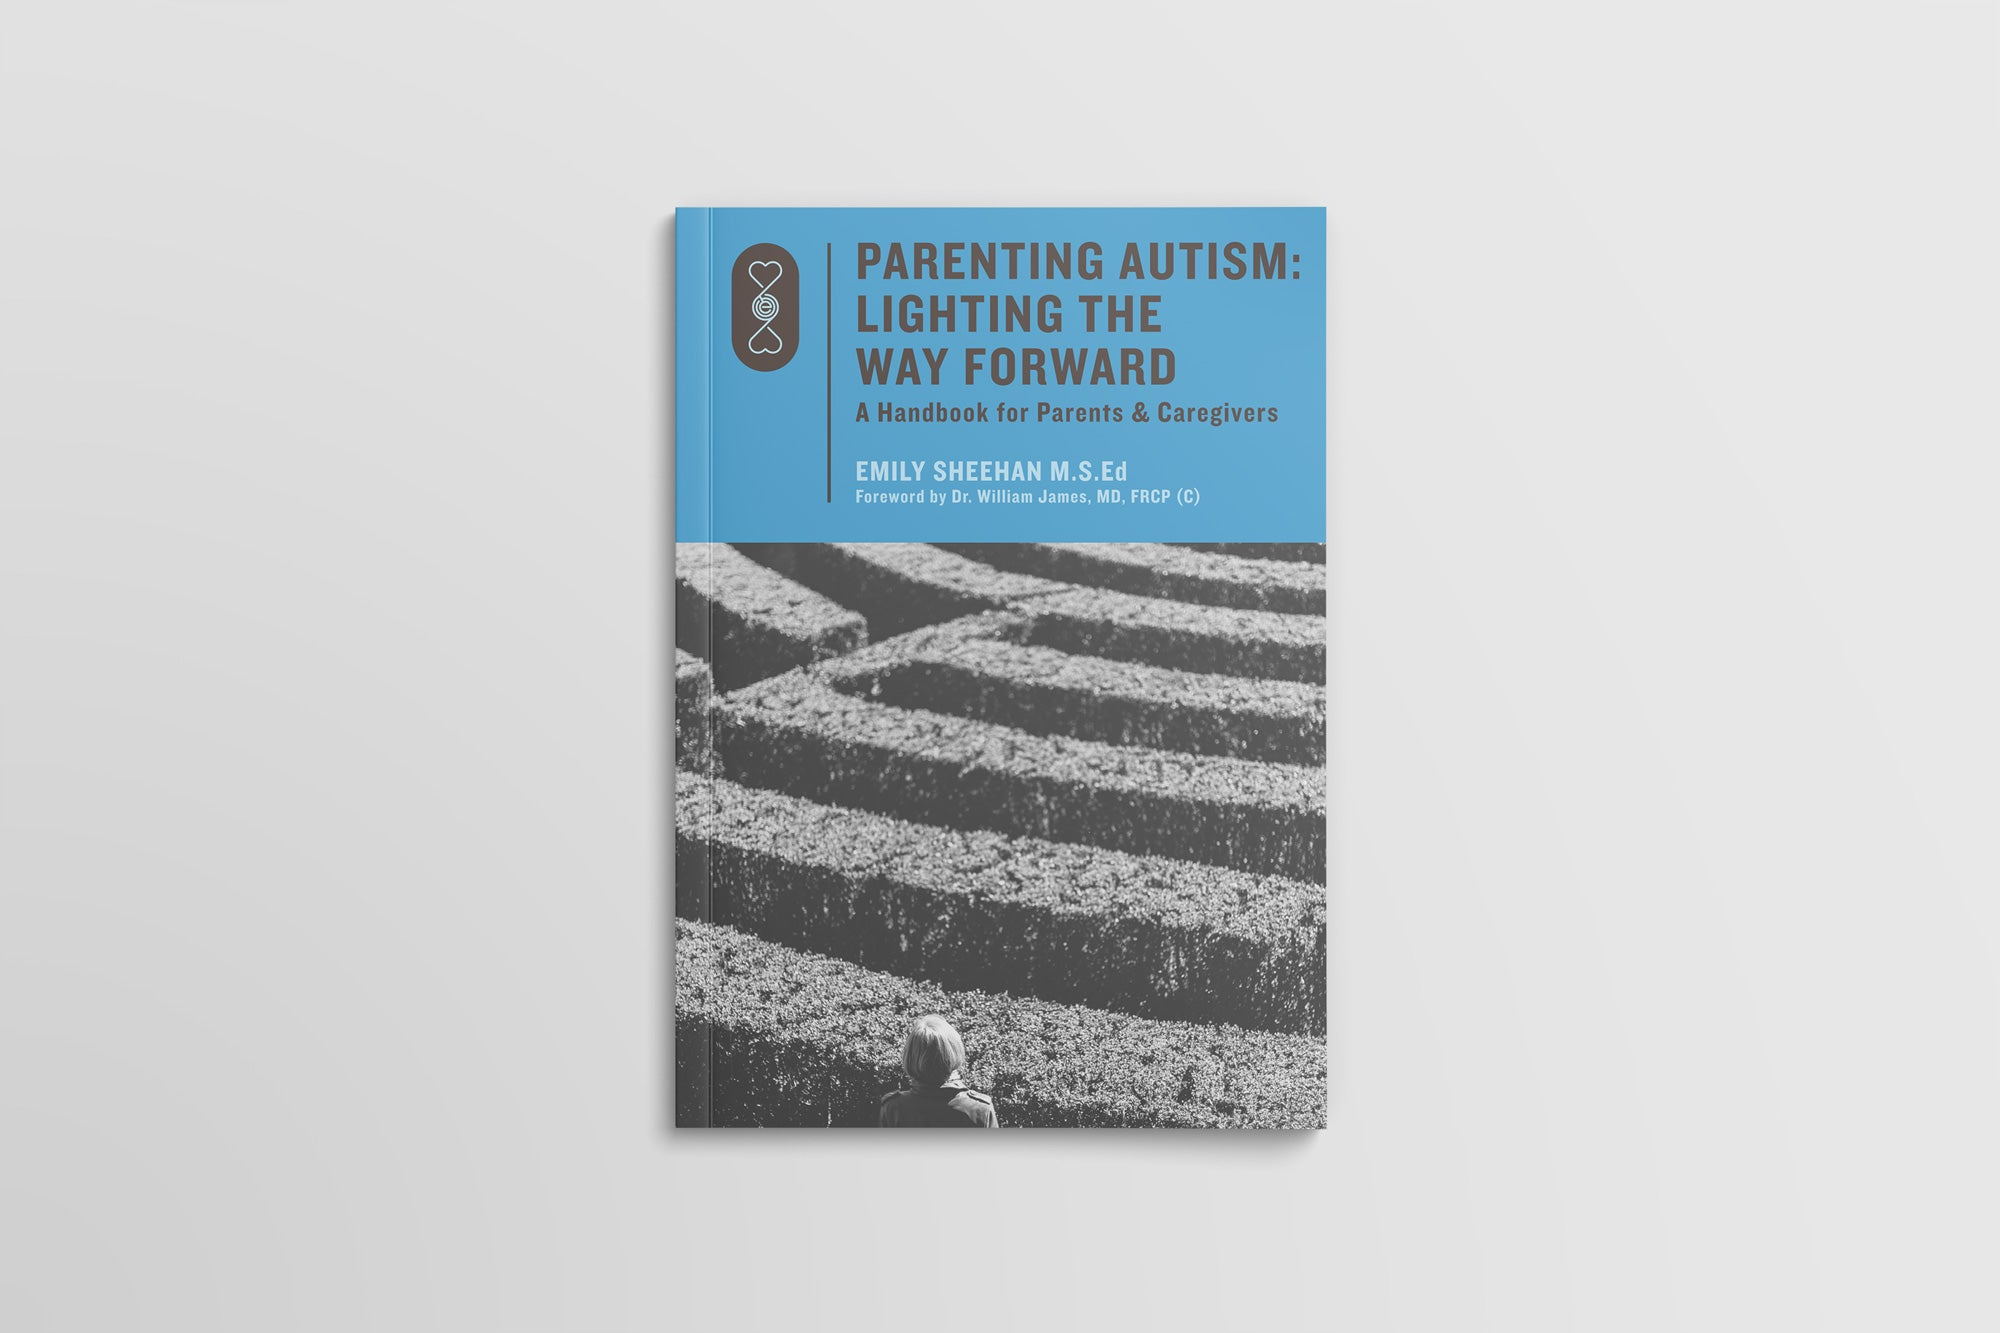 Parenting Autism: Lighting the Way Forward